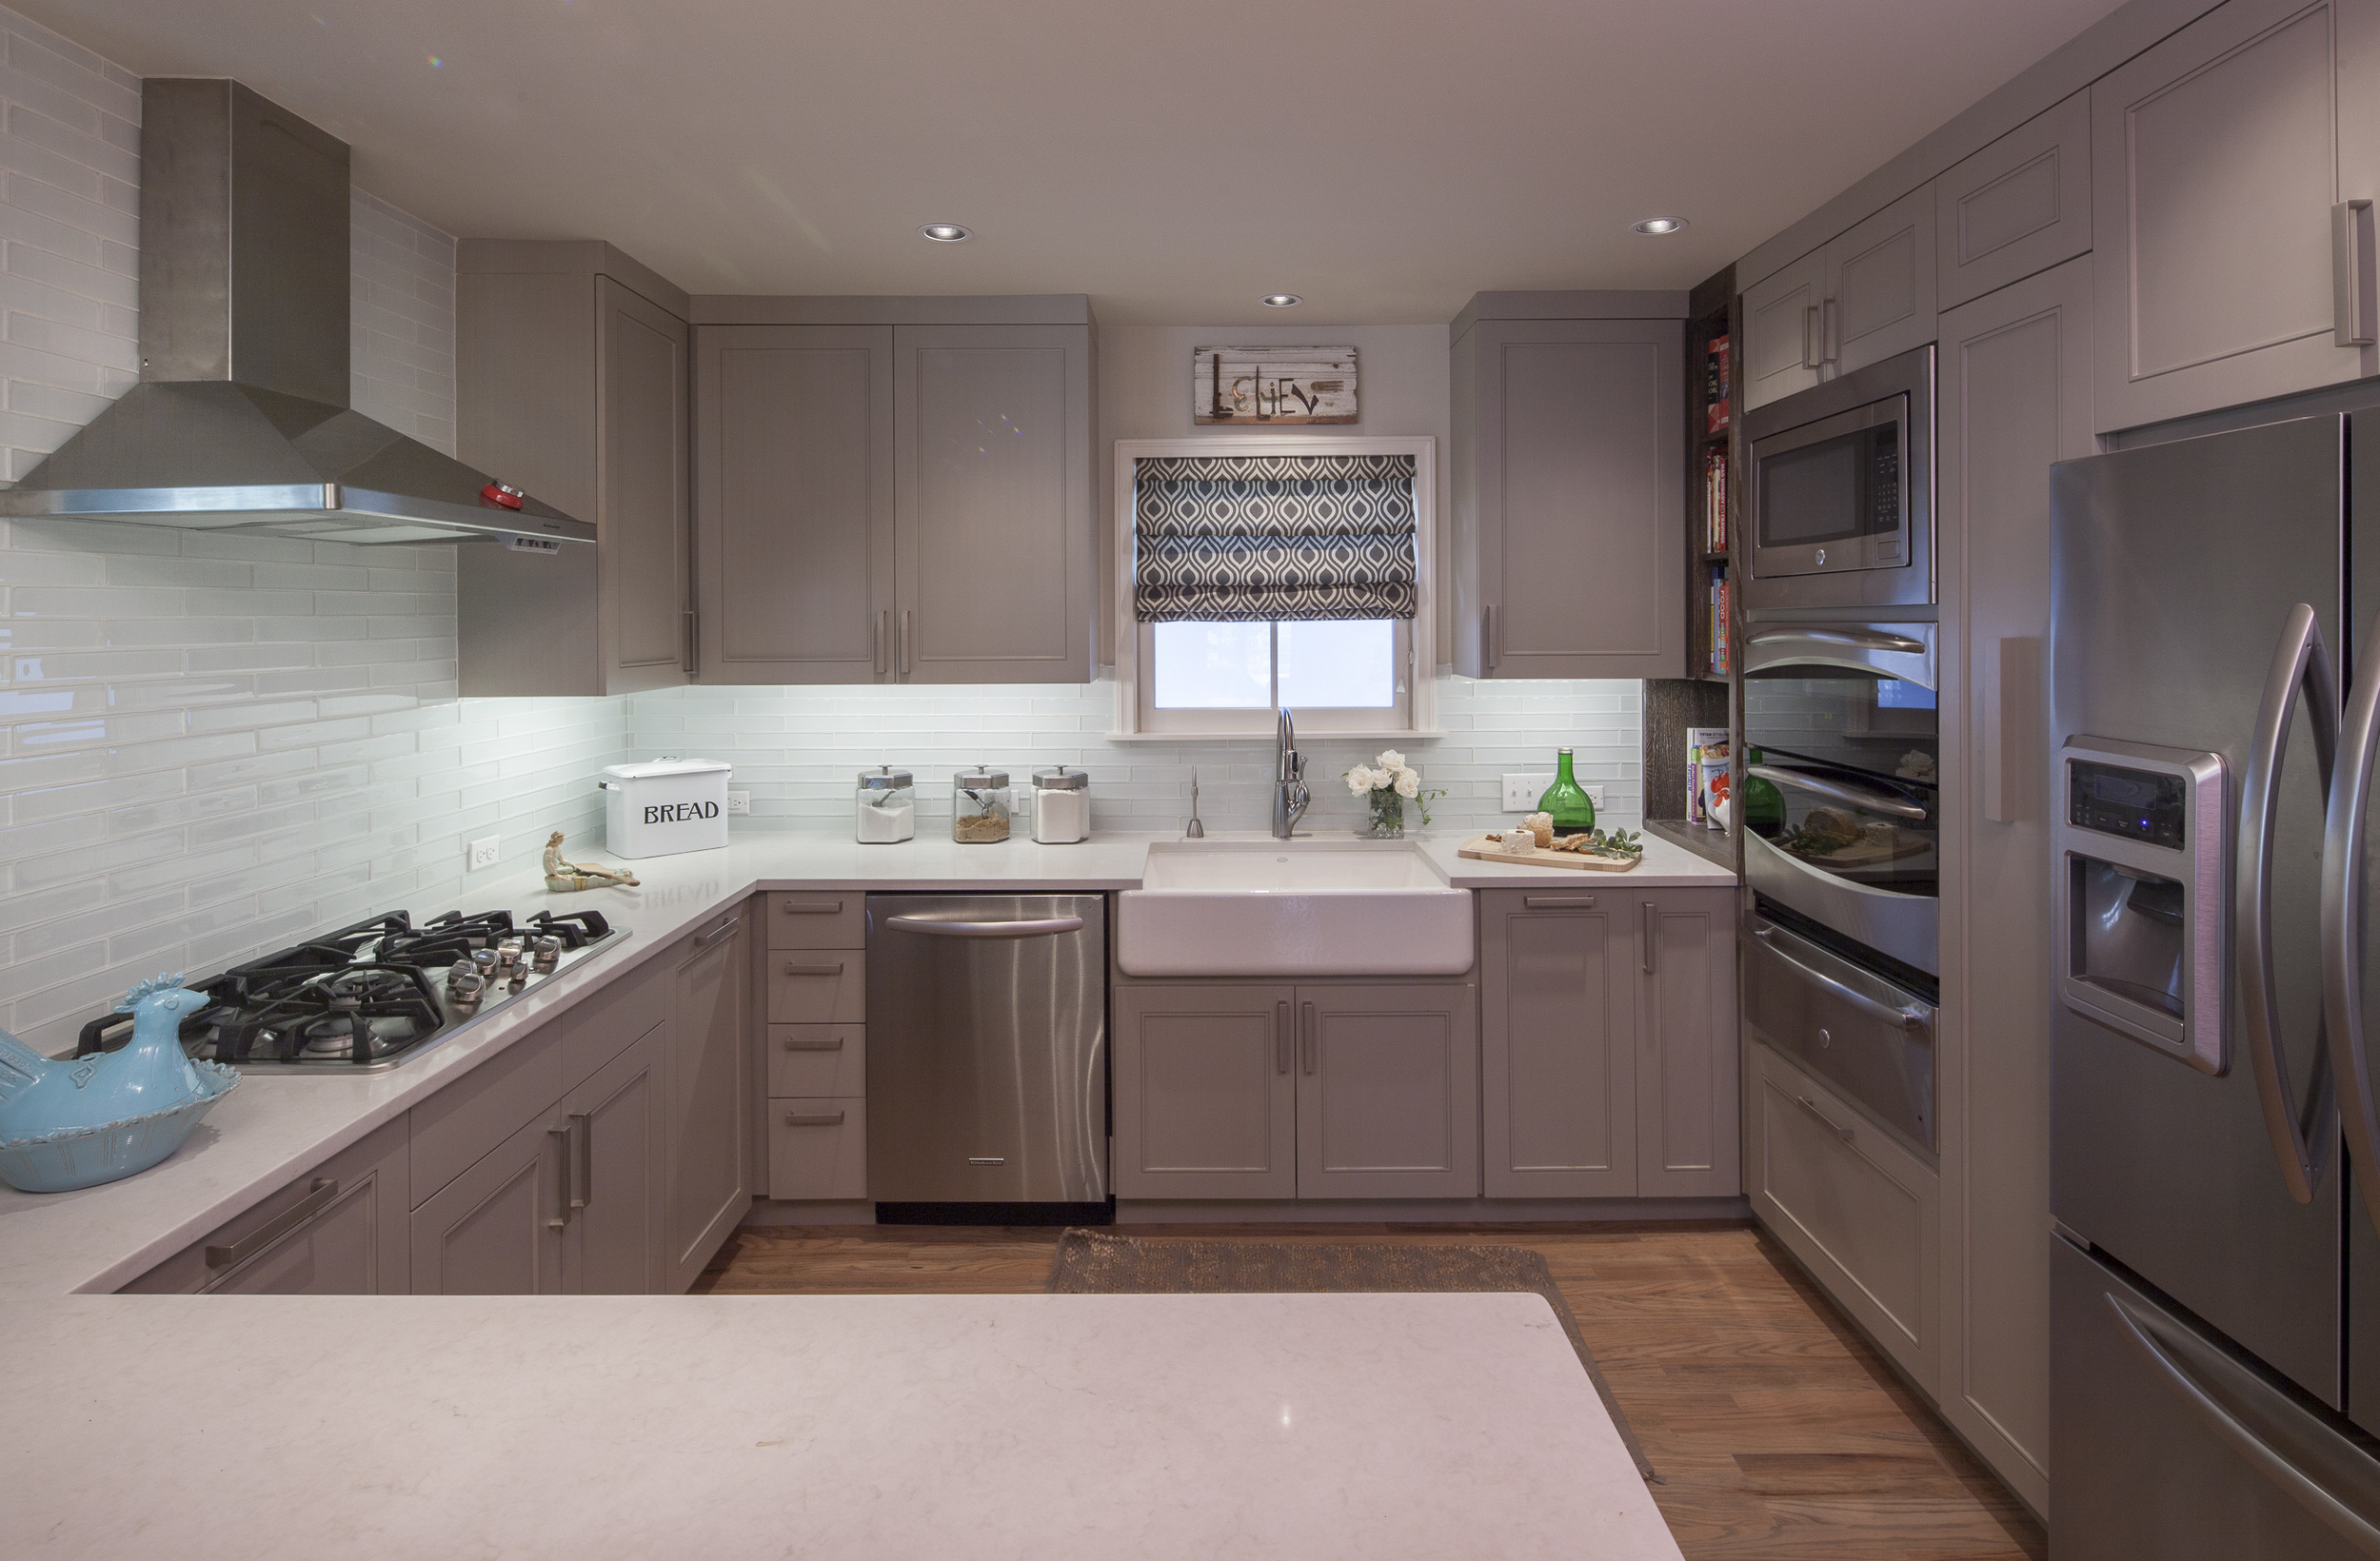 """Kitchen overview #1. Note the sink style (called a """"farm sink"""") - and itsemplacement - which allows food prep around a horseshoe arrangement and counter cleaning to be managed easily with a simple sweep into the sink."""